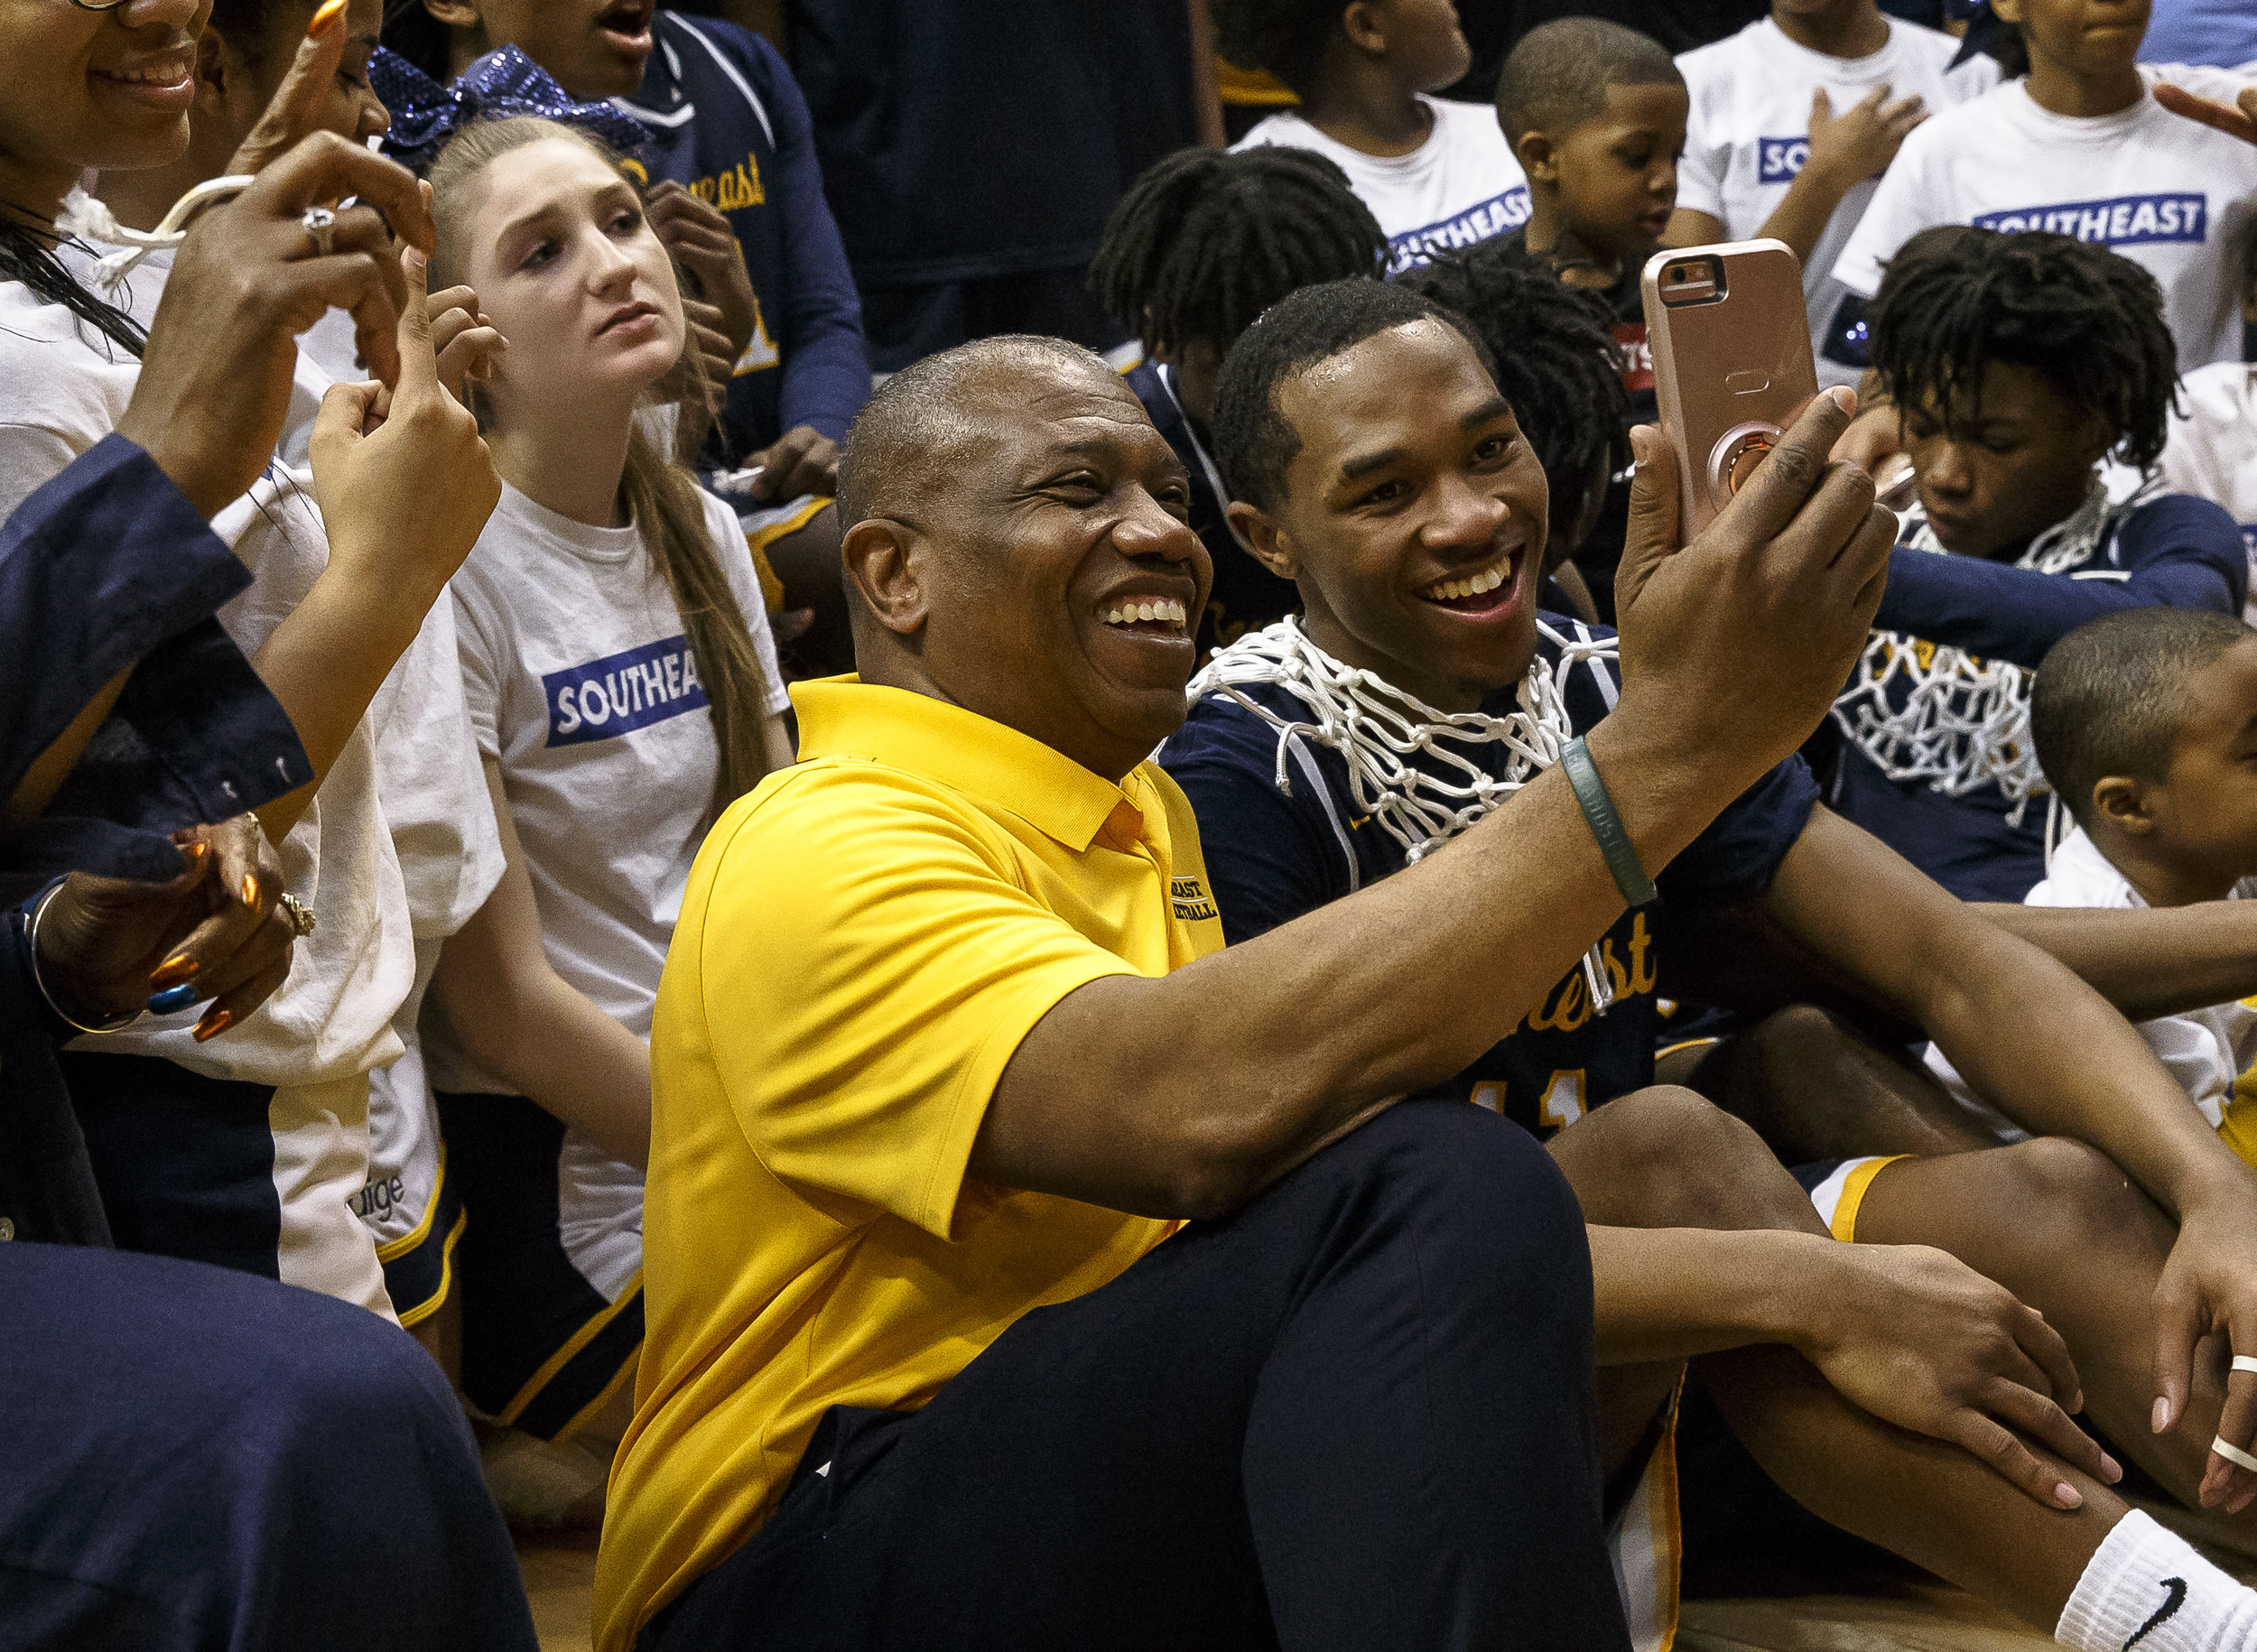 Southeast boys basketball head coach Lawrence Thomas video chats with his son and former Spartan as they celebrate their 56-51 victory over Marion in the Class 3A Springfield Supersectional at the Bank of Springfield Center, Tuesday, March 13, 2018, in Springfield, Ill. [Justin L. Fowler/The State Journal-Register]